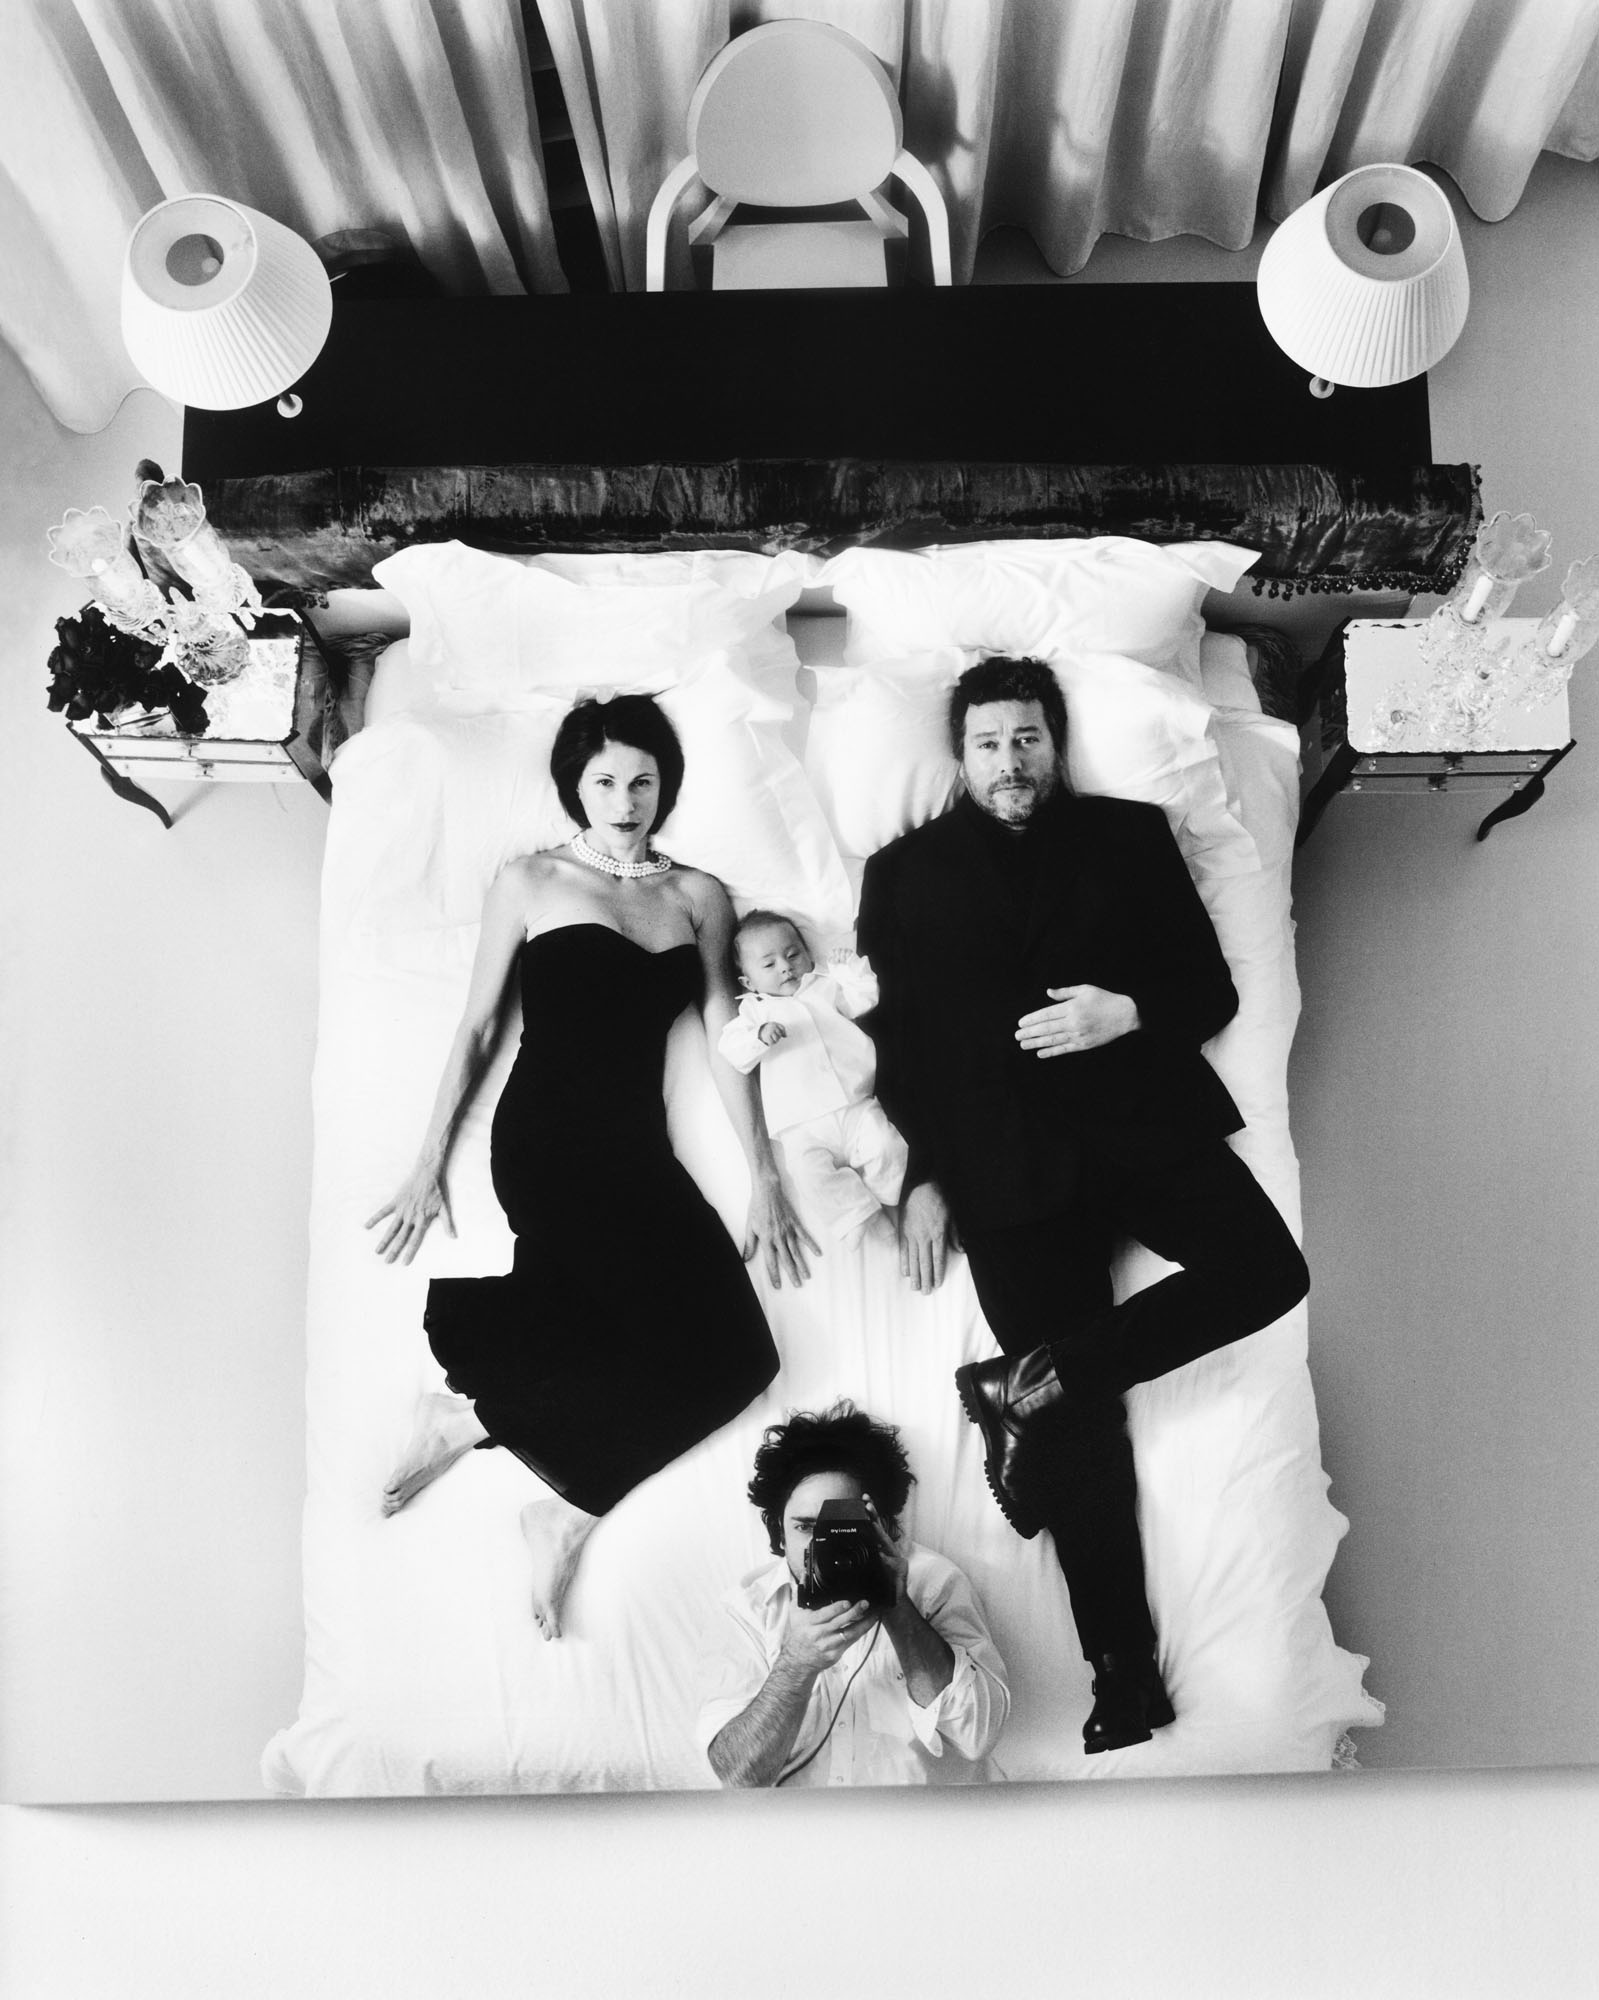 Philippe Starck with wife Nori and baby Oa (and myself) - Paris